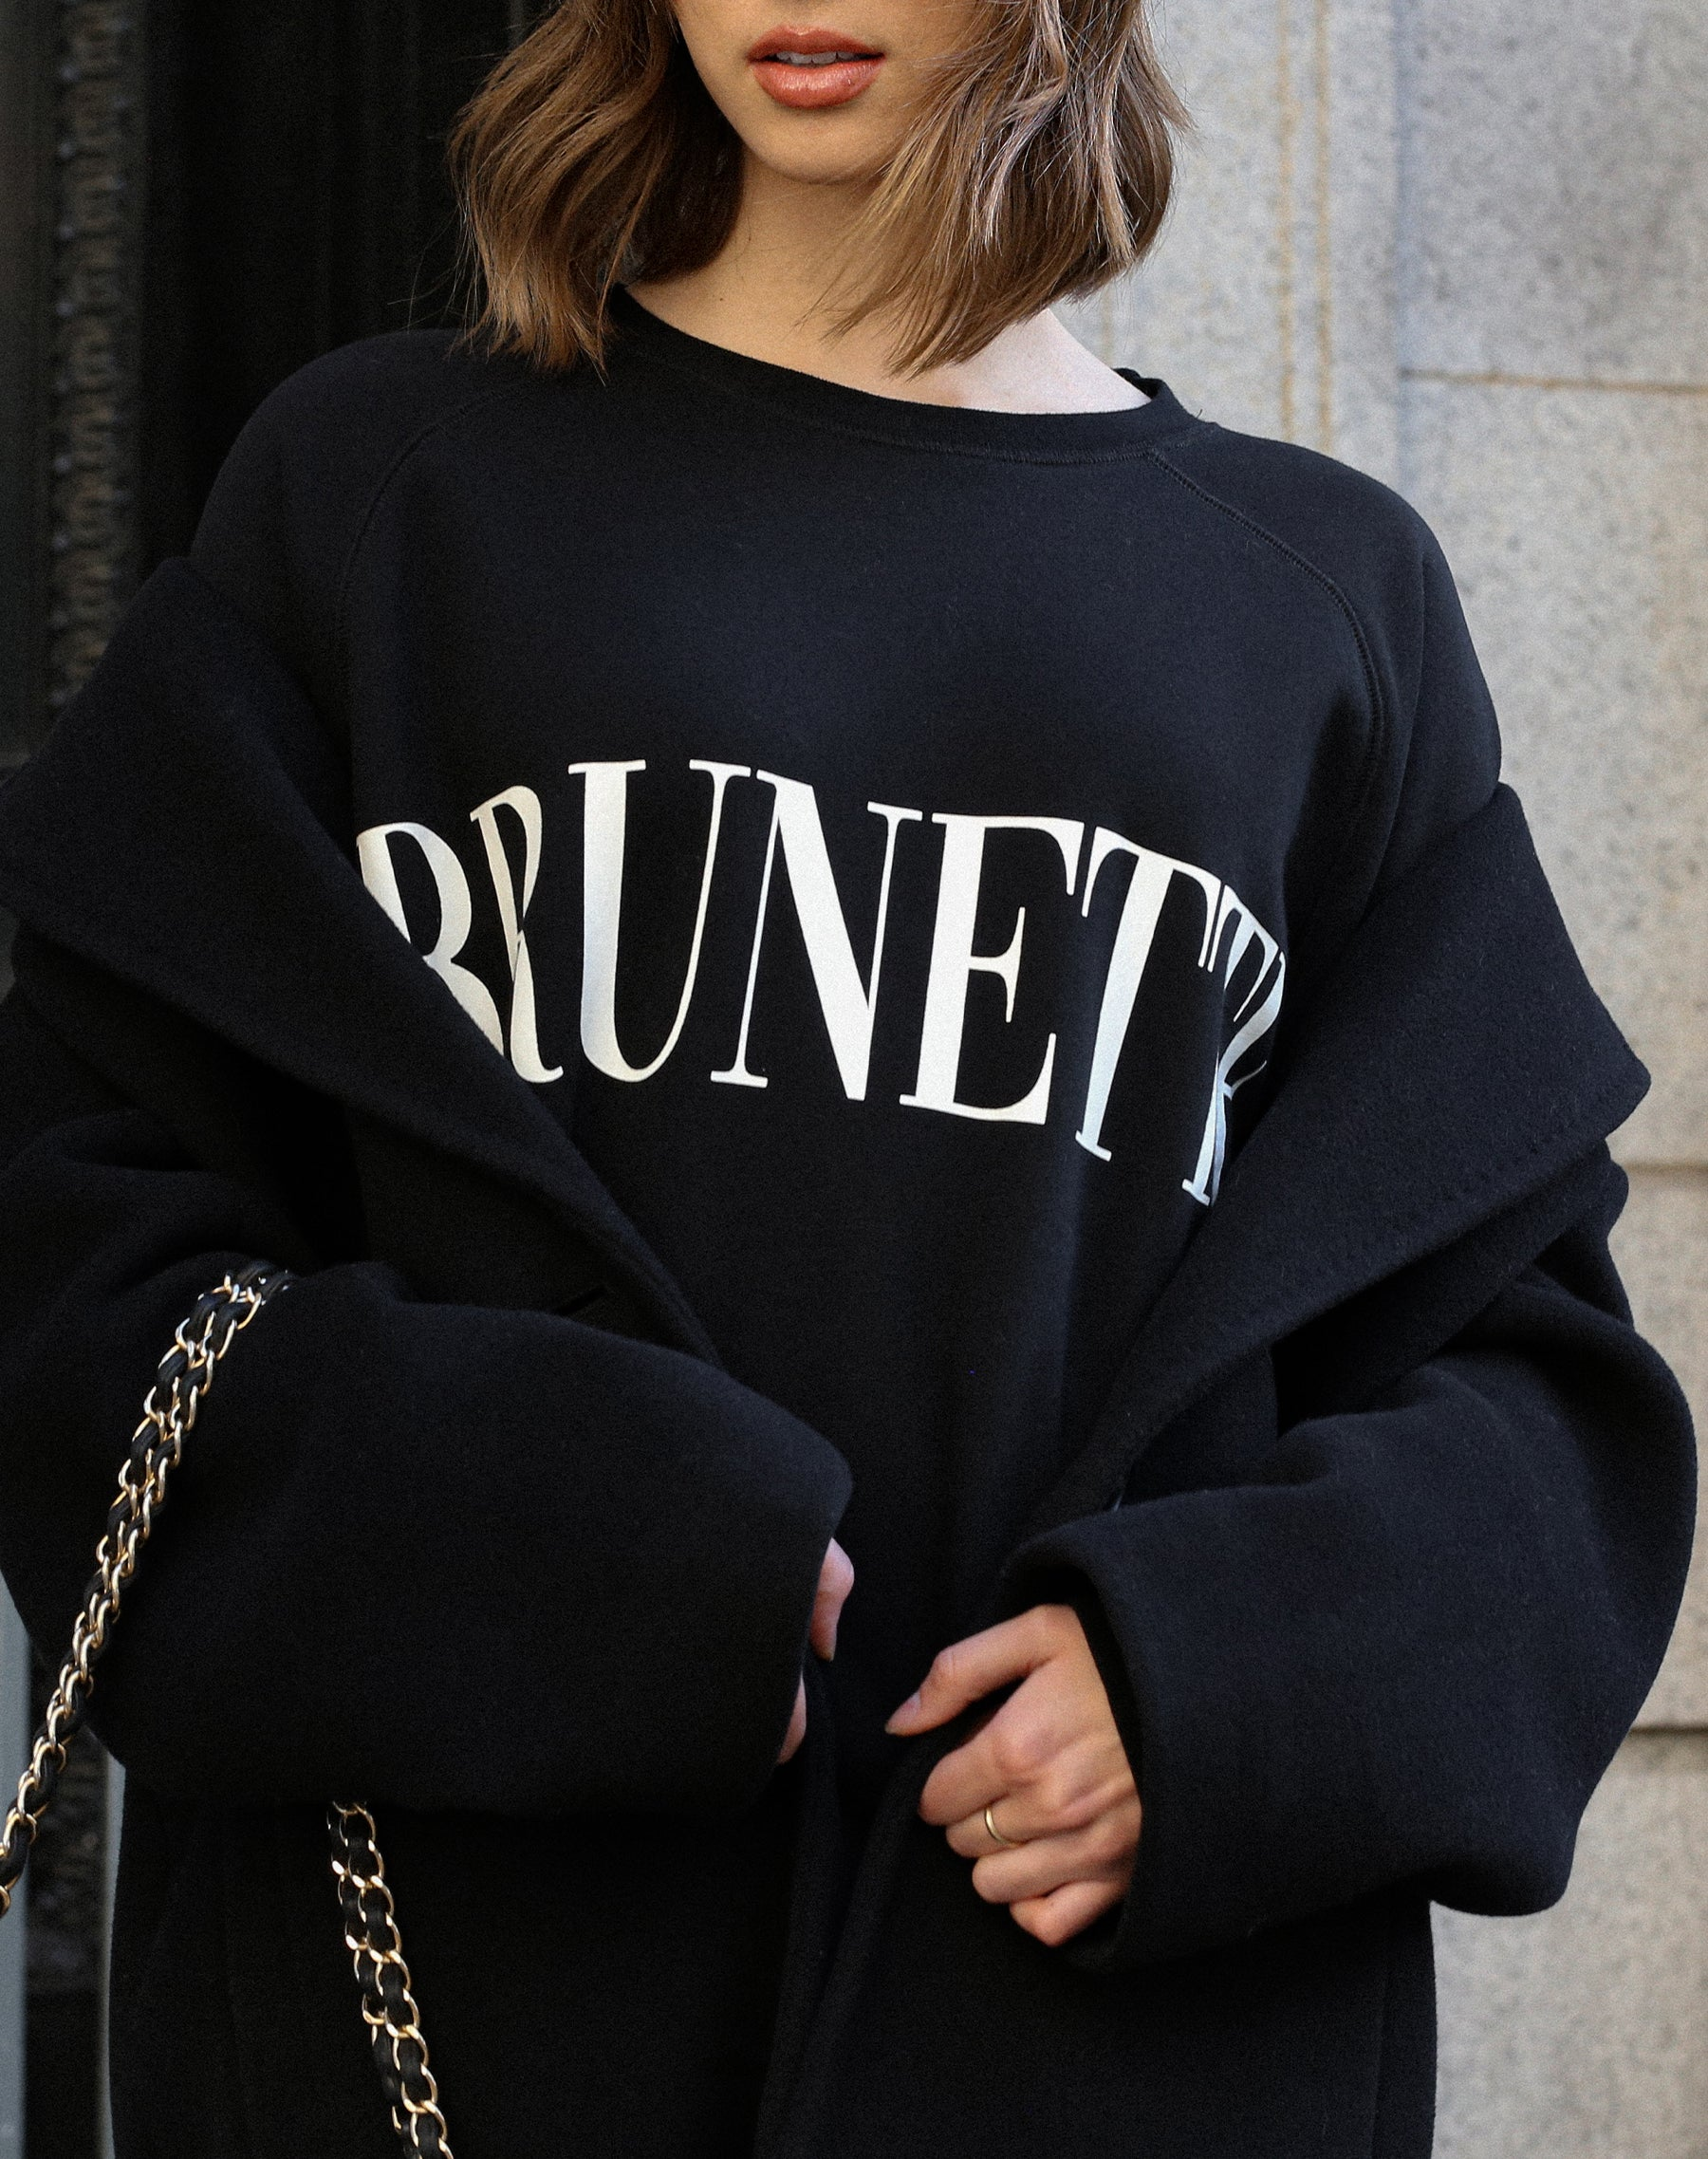 This is a photo of a model wearing the Lounge Brunette Big Sister Crew Neck Sweatshirt in Black by Brunette the Label.